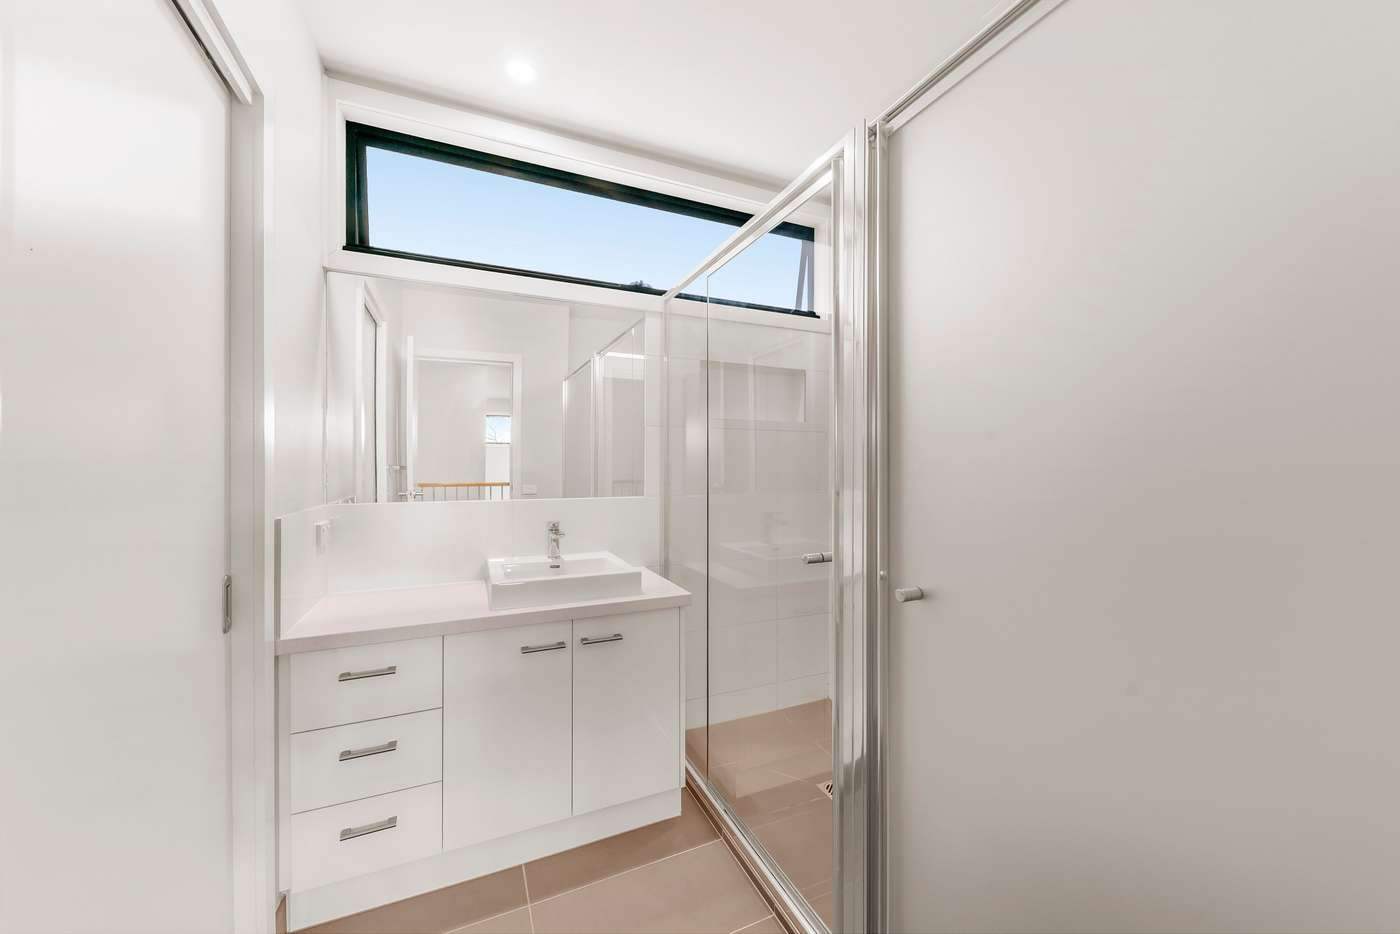 Sixth view of Homely house listing, 1 Mersey Close, Rowville VIC 3178